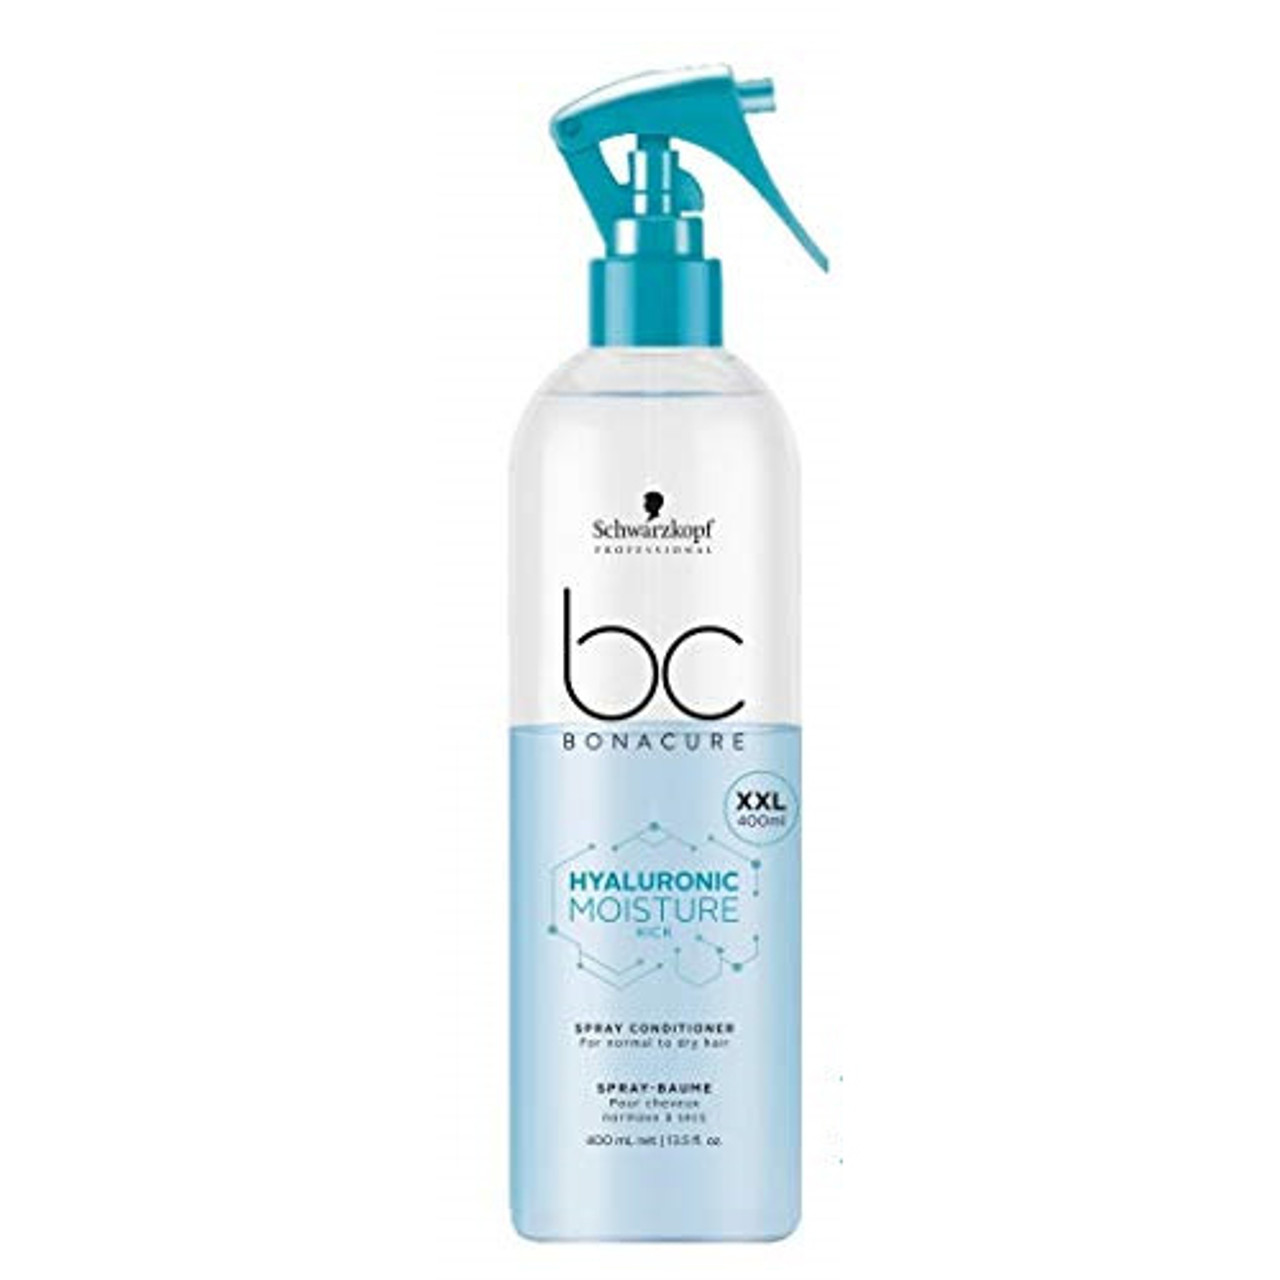 Bonacure Moisture Kick Micellar Cleansing Conditioner, 13.6 oz